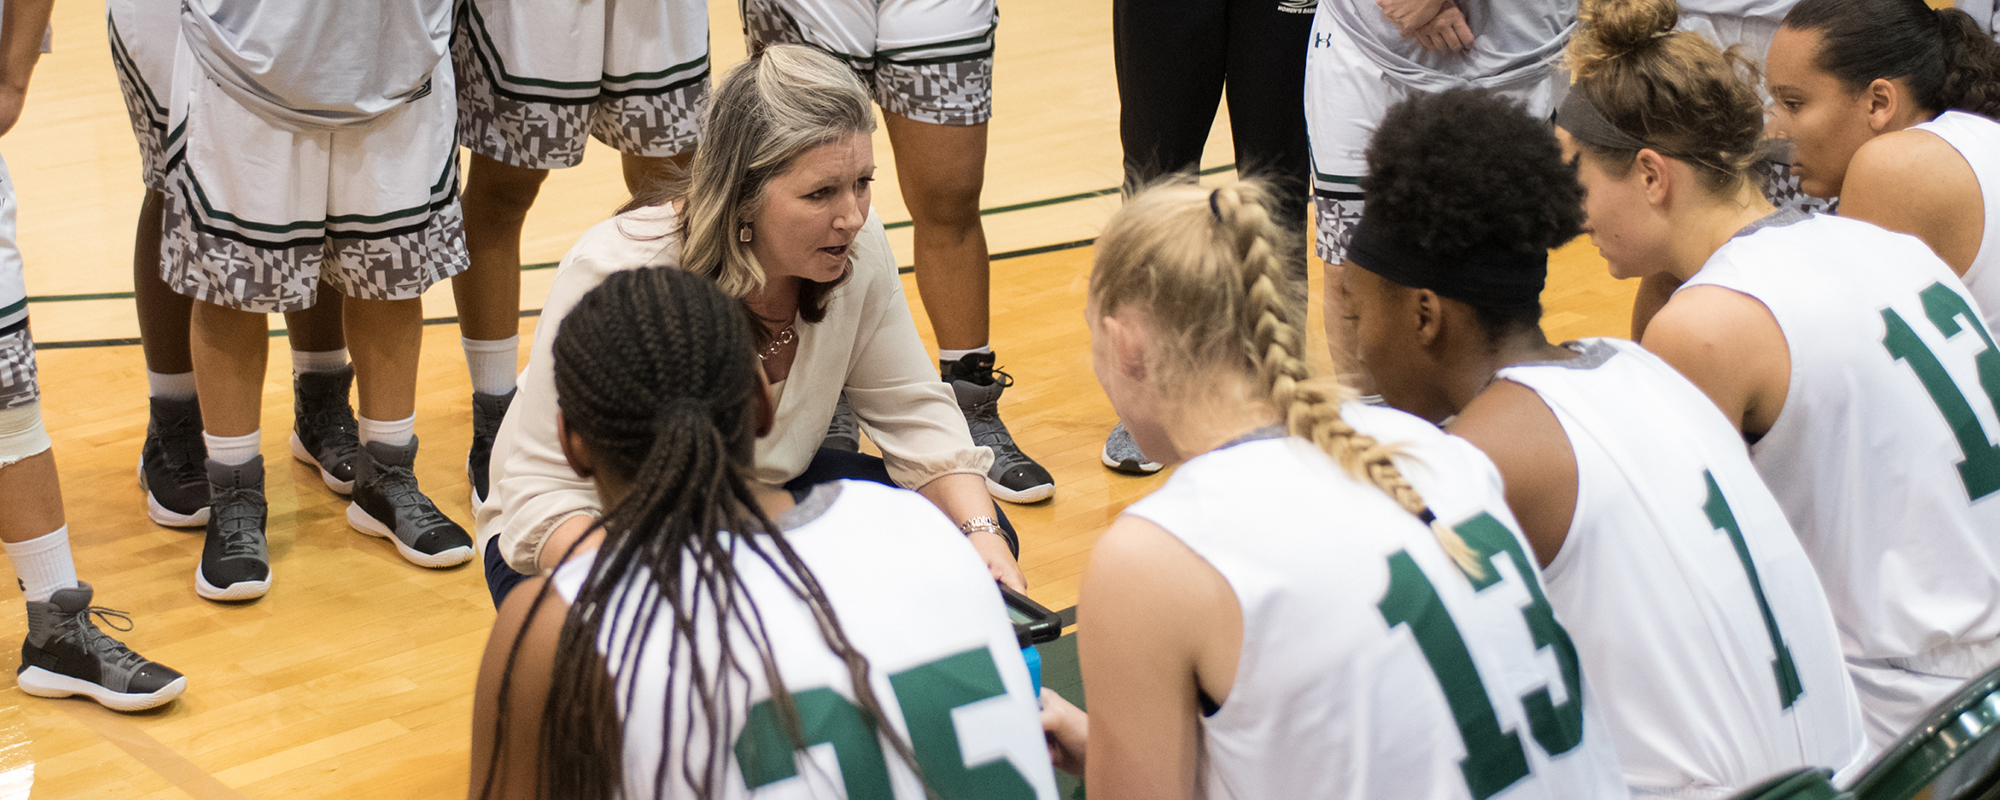 Women's Basketball Opens at Home November 10